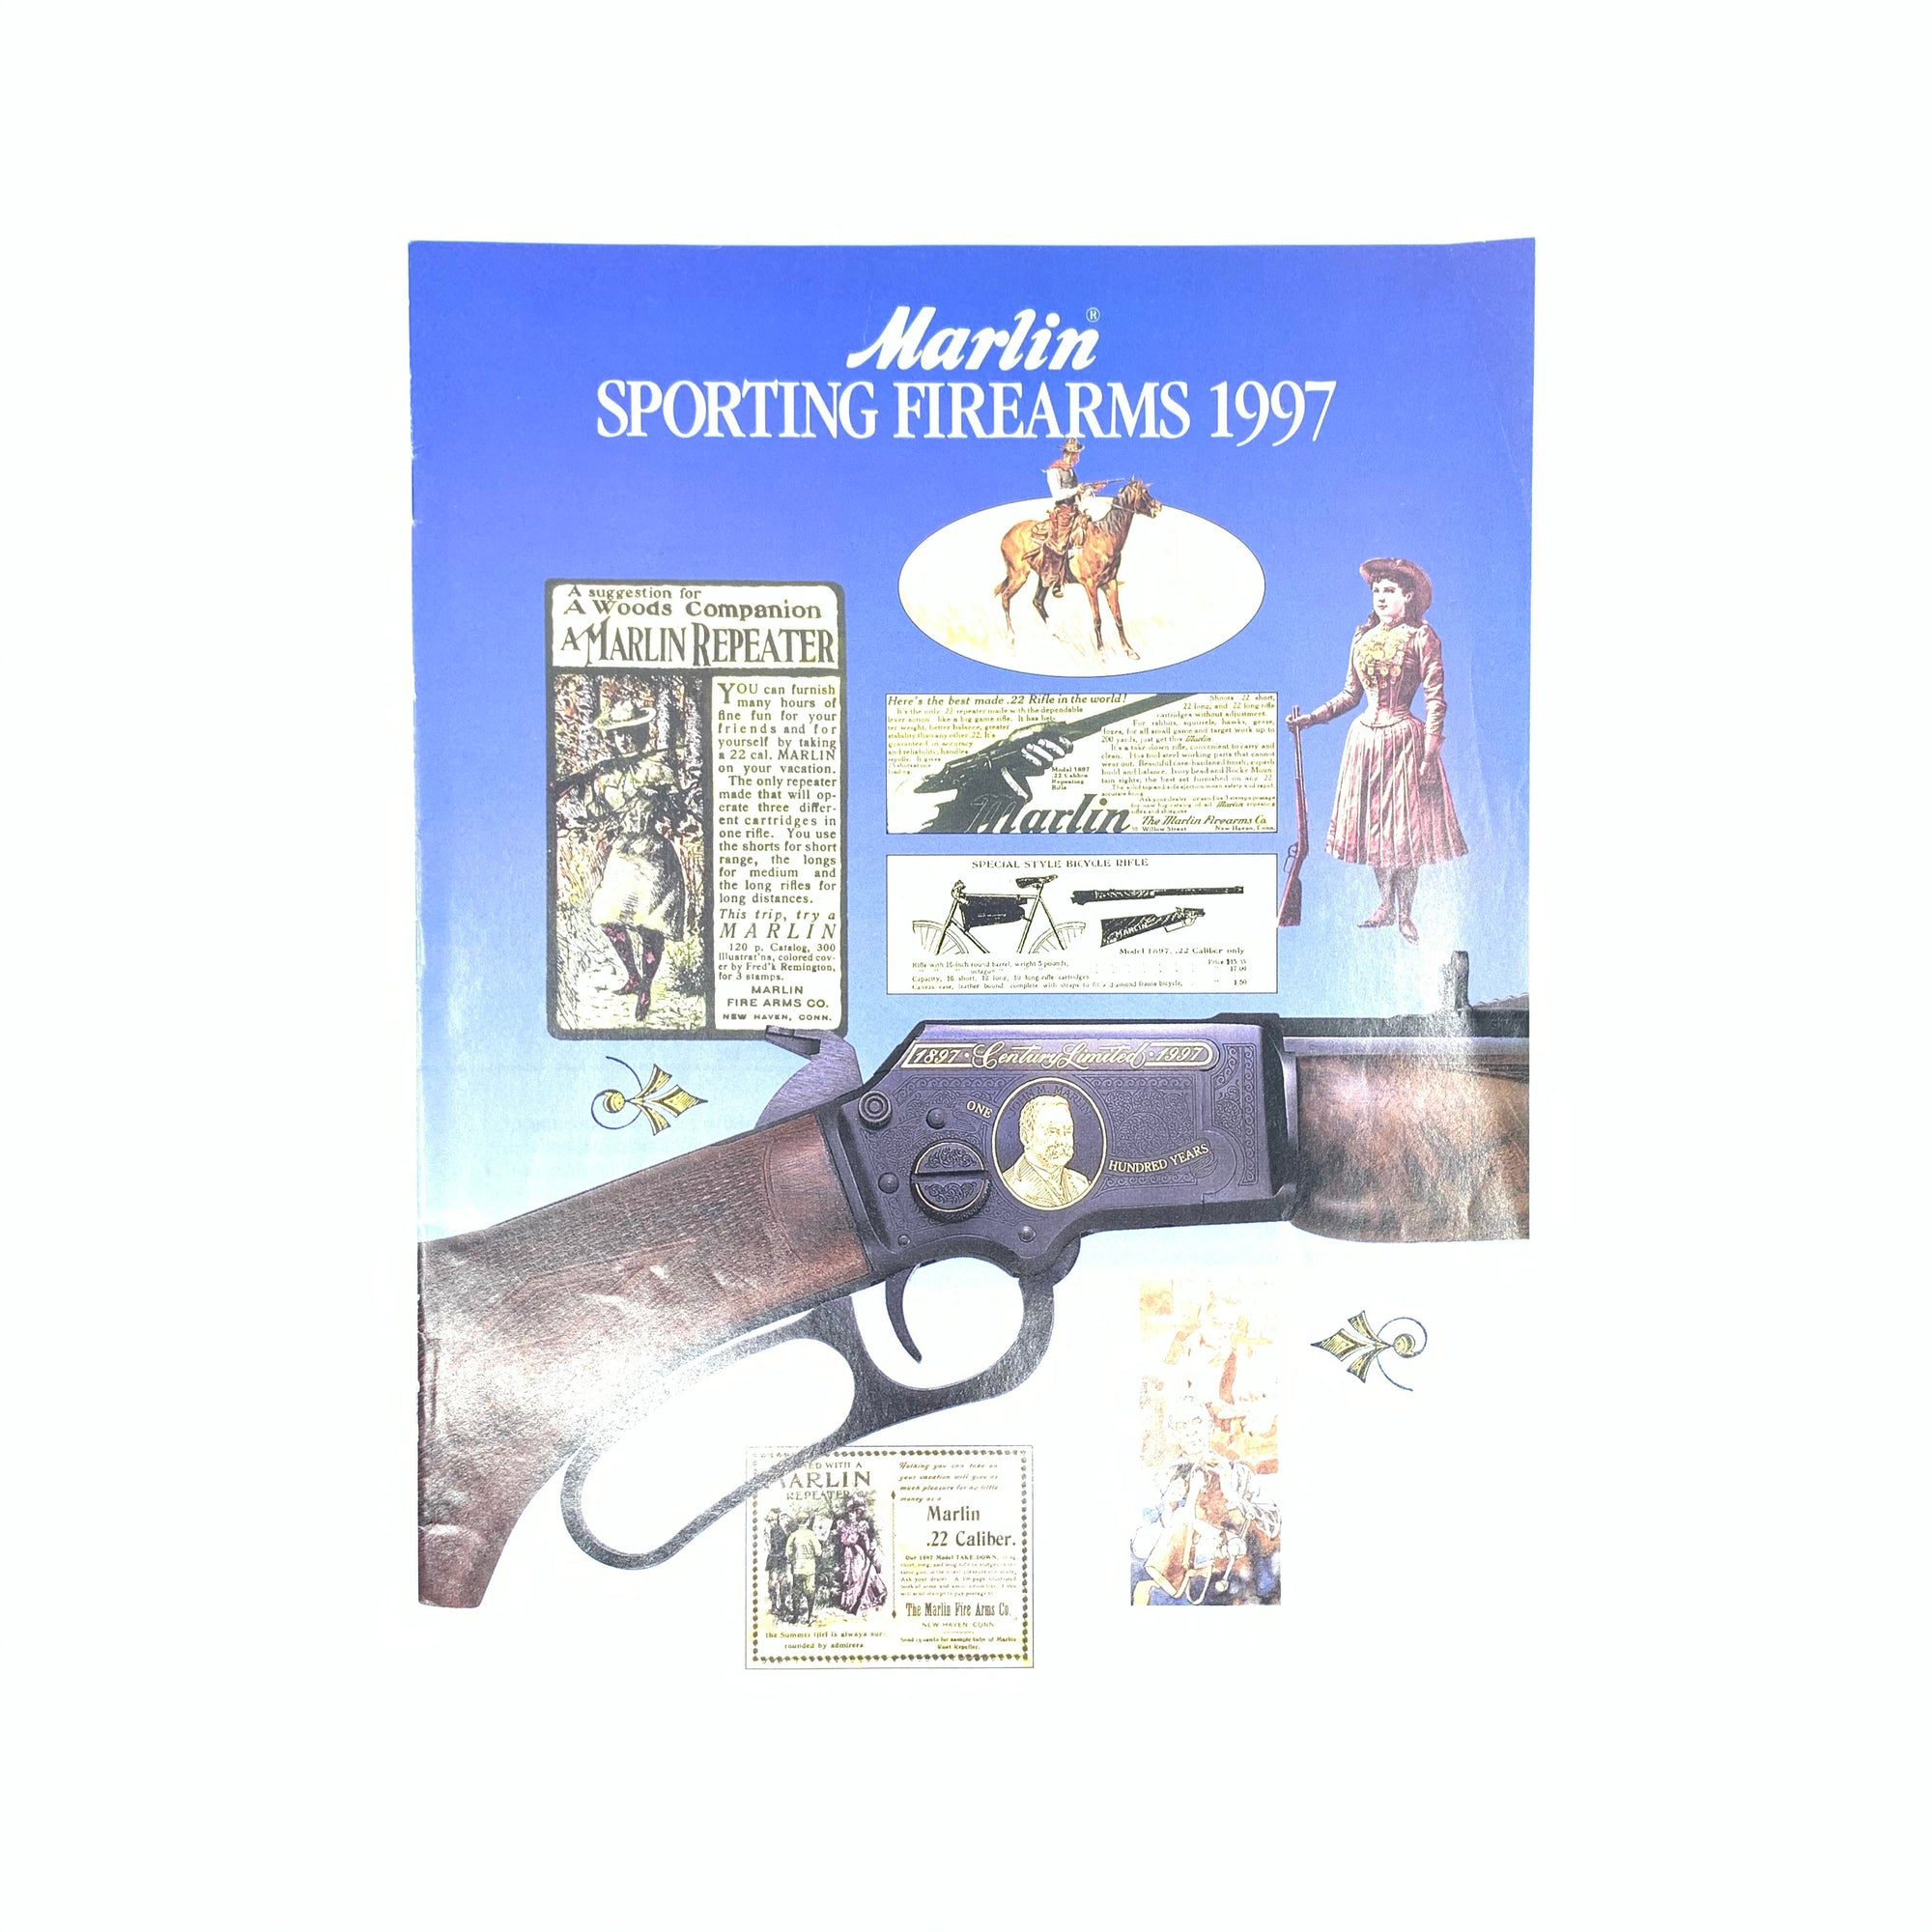 Marlin 1997 Sporting Firearms Catalogue